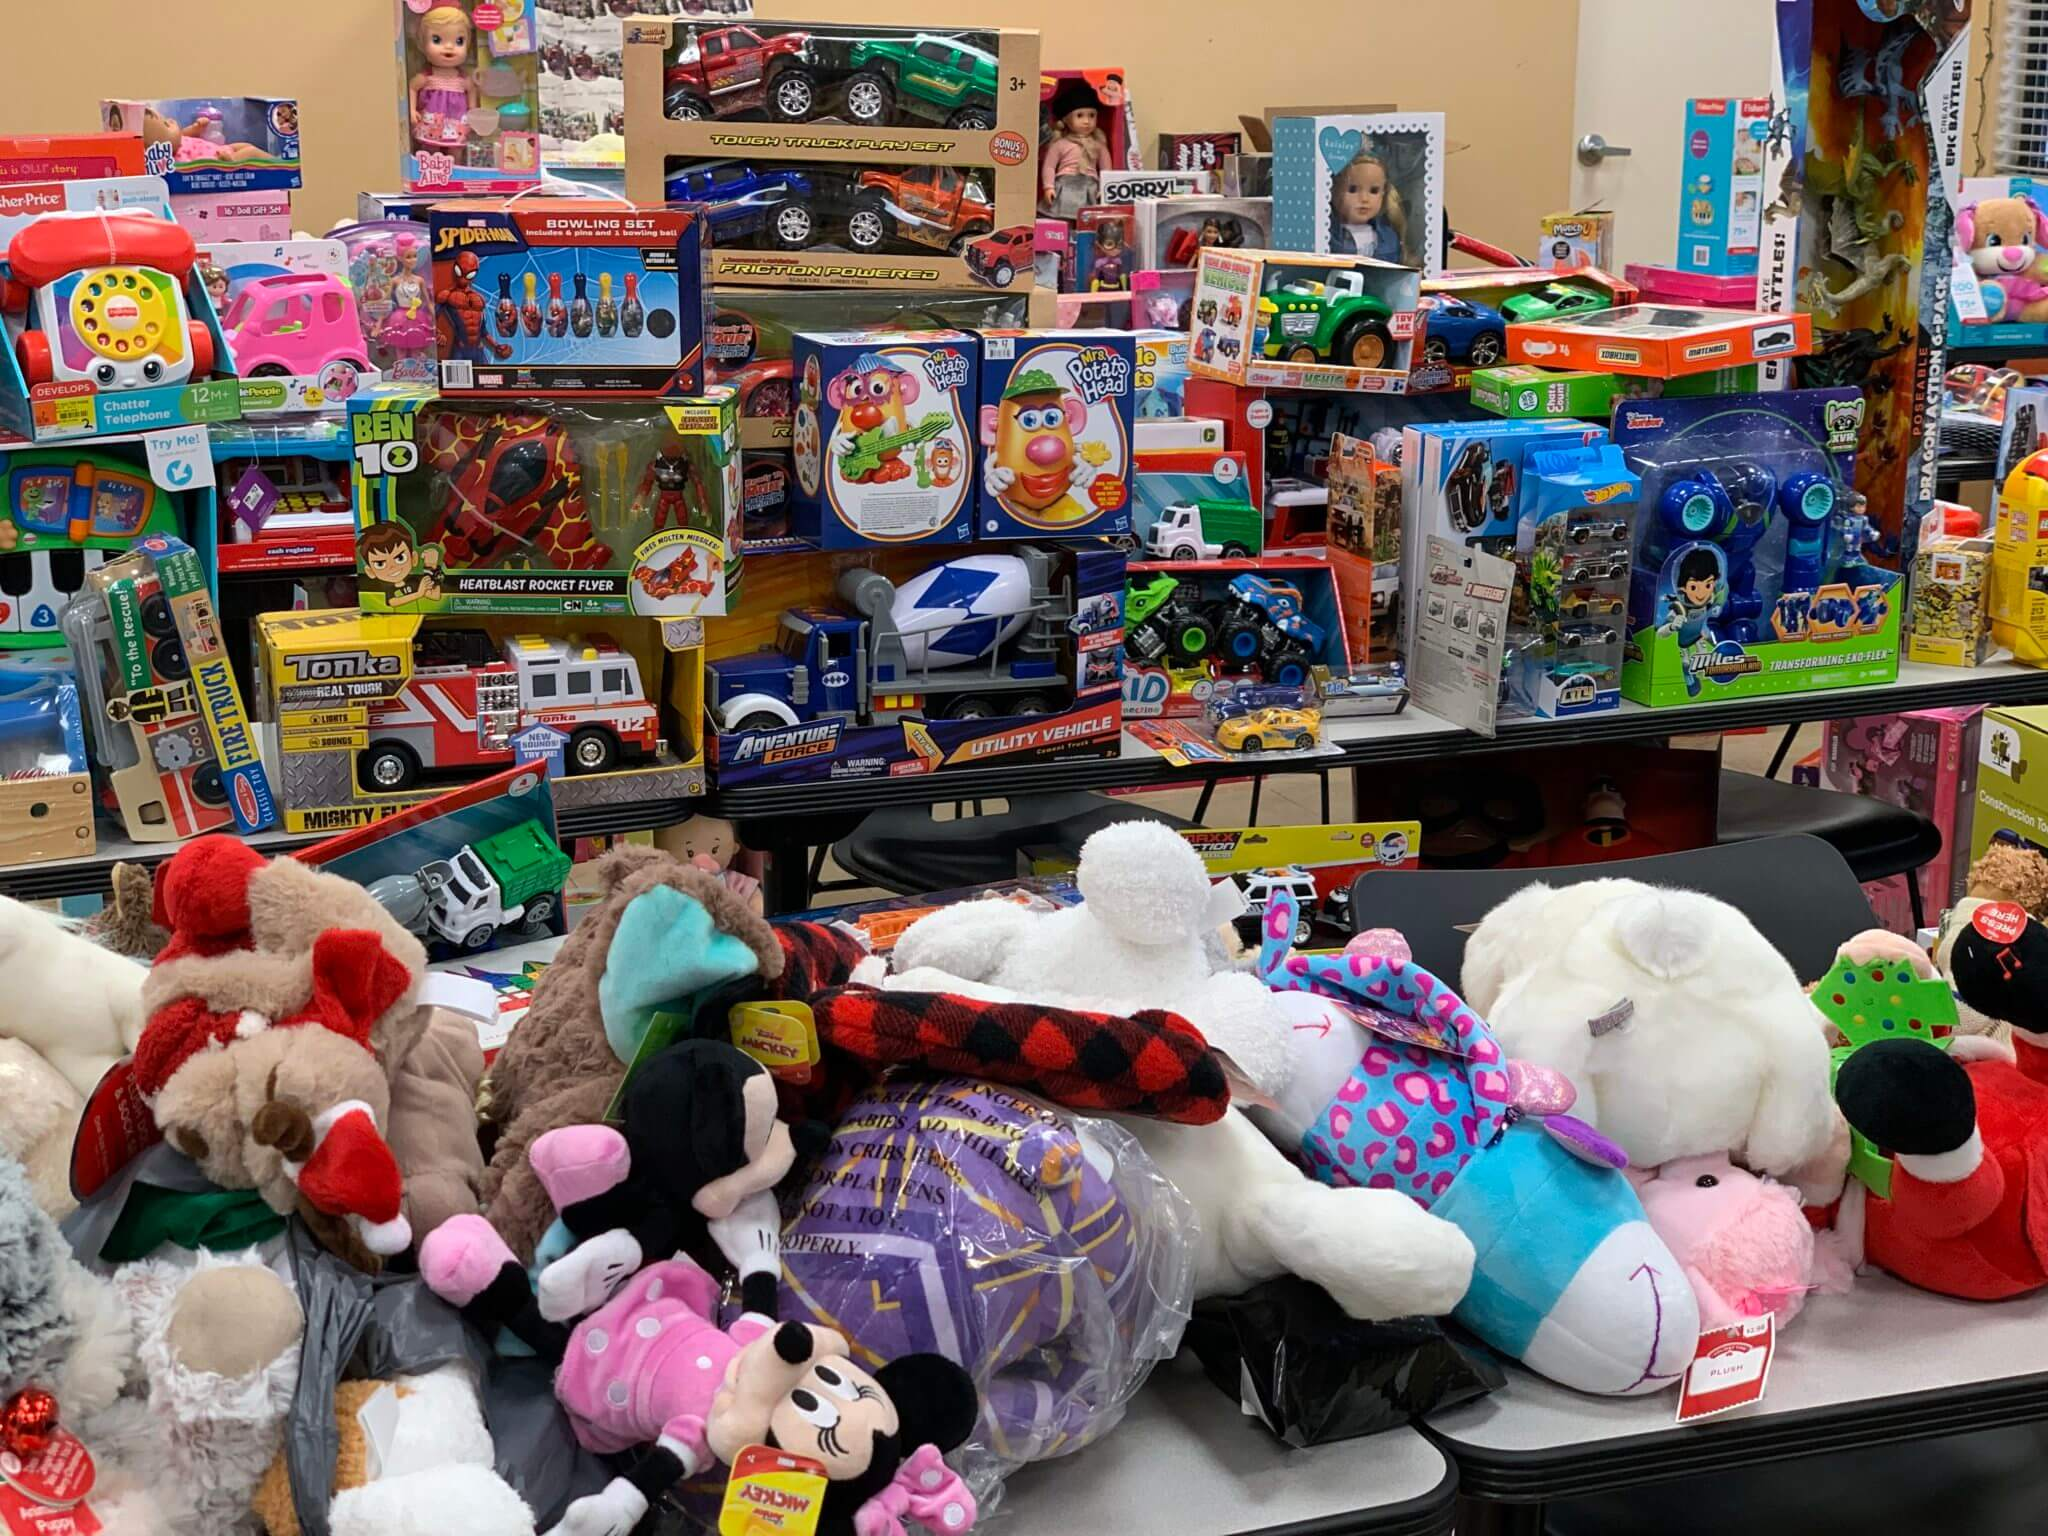 Thank You to All That Helped Make Annual Holiday Toy Drive a Success